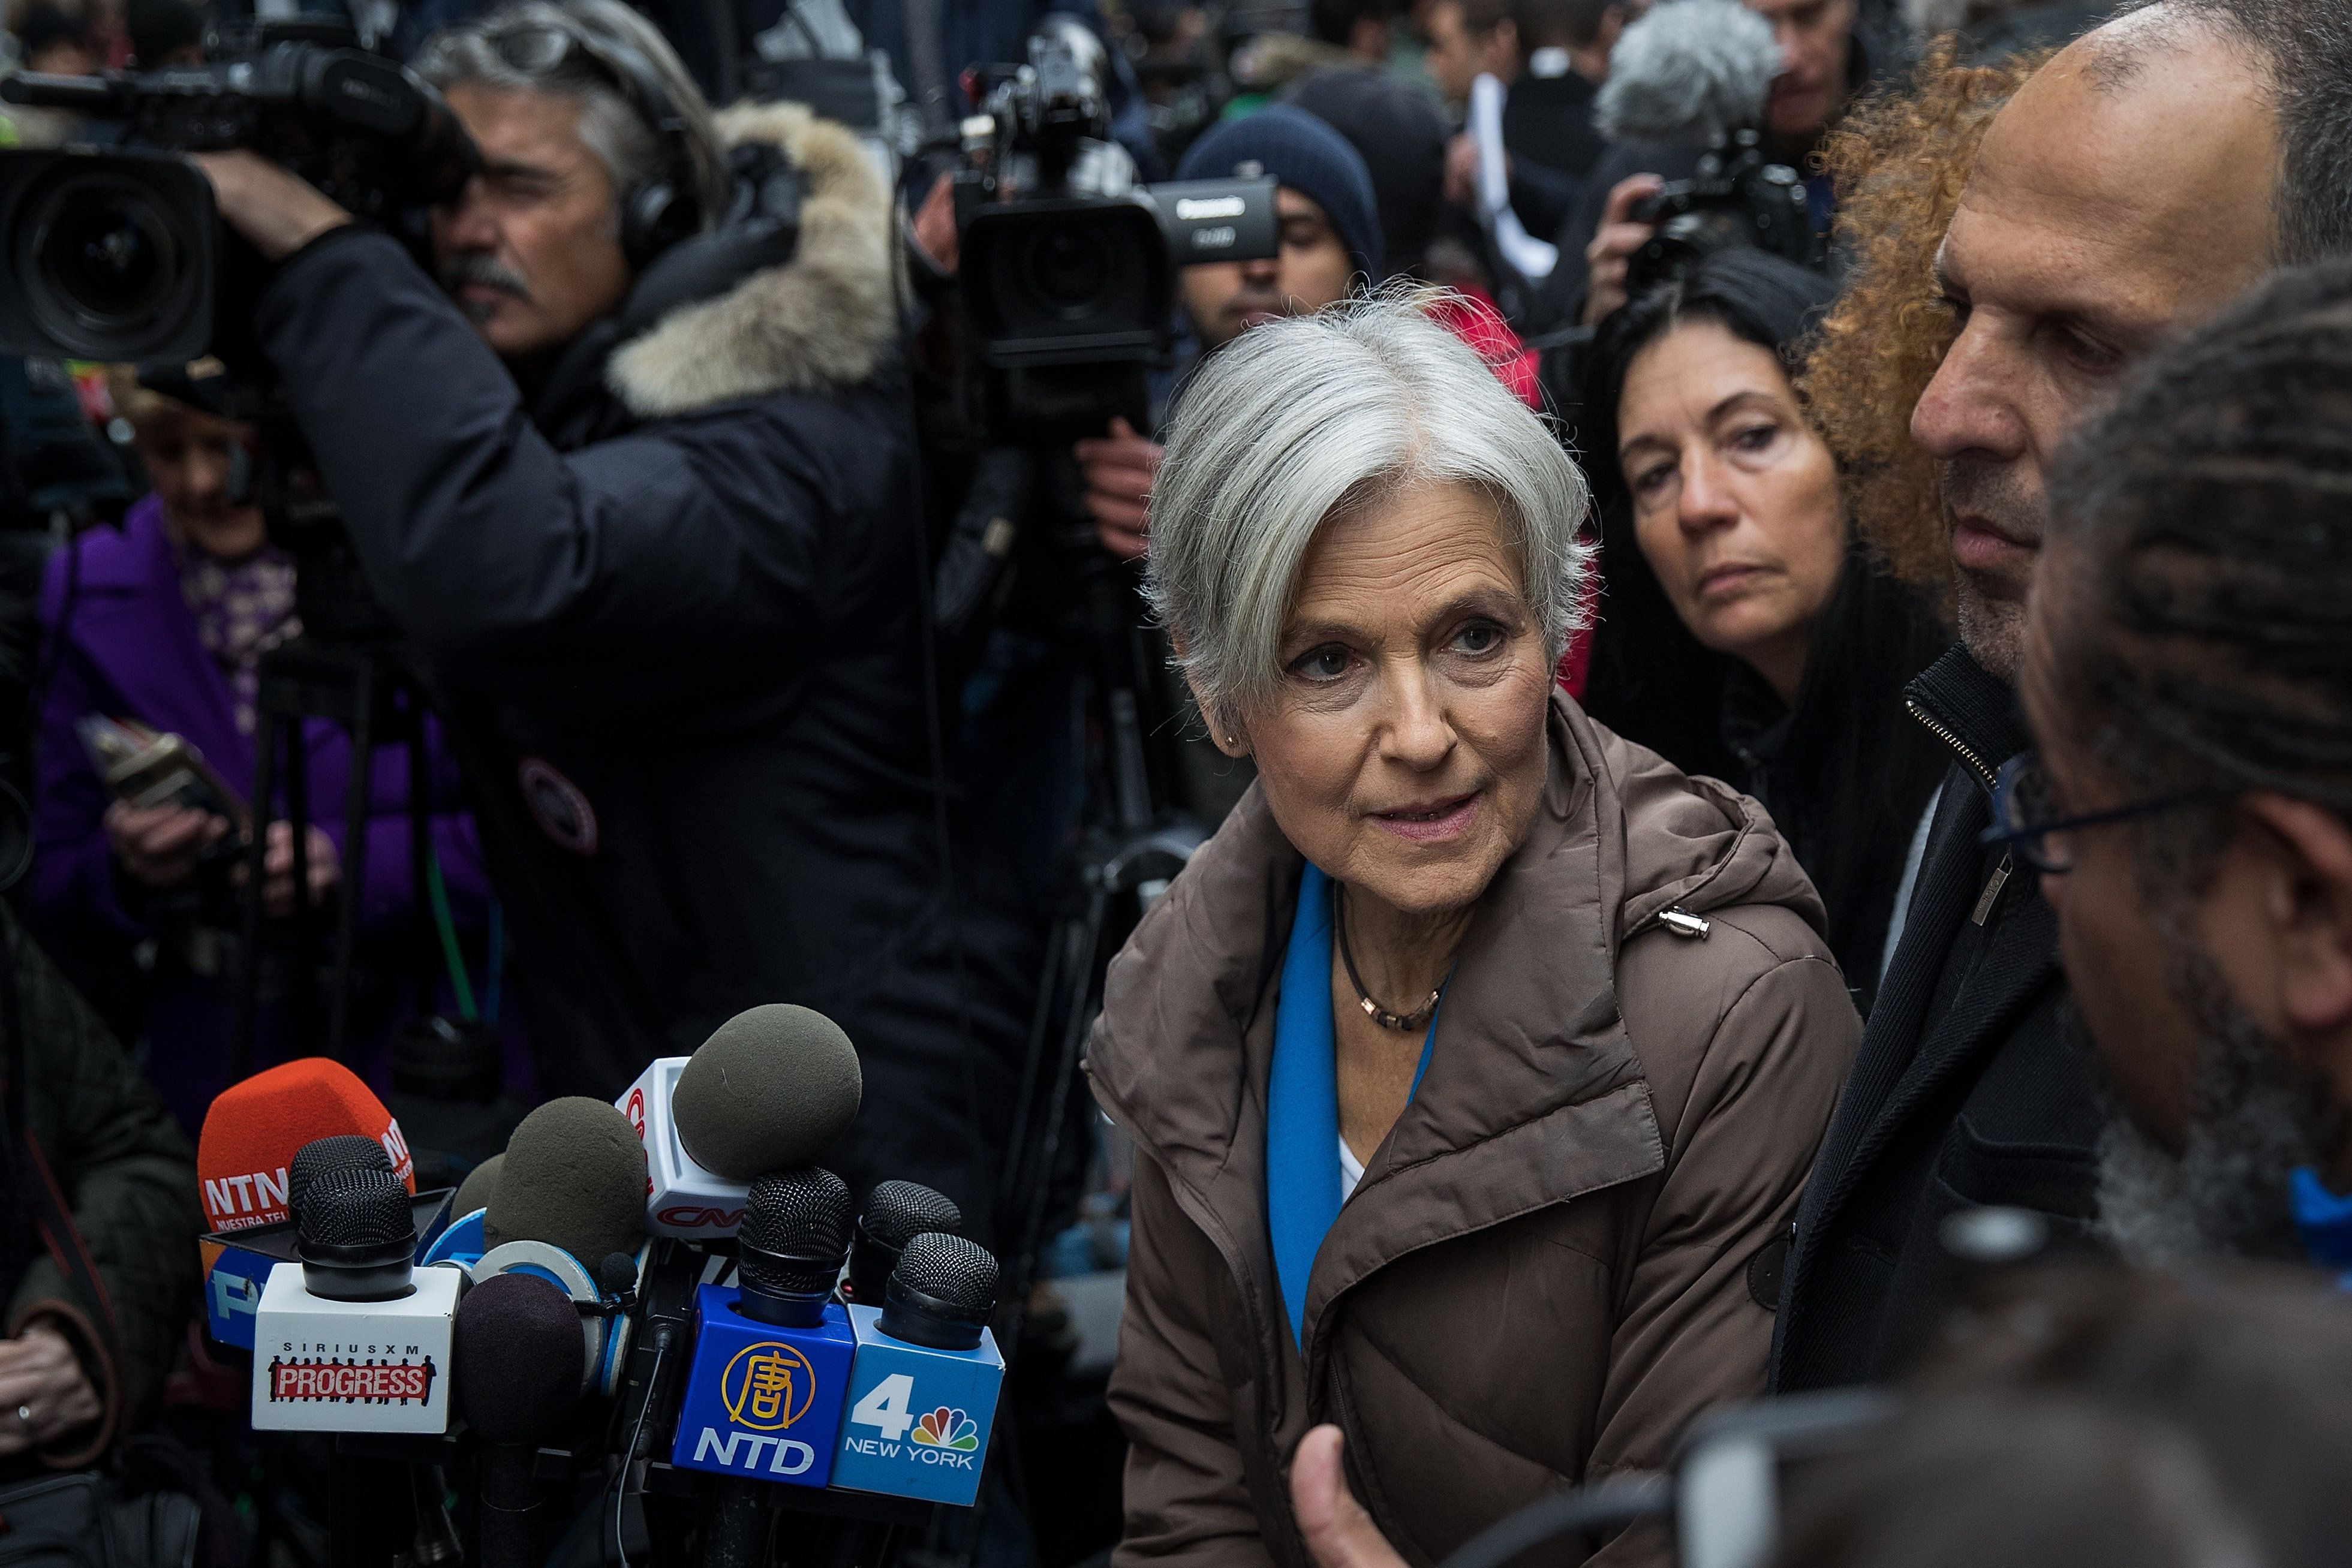 Green Party presidential candidate Jill Stein, here at a Manhattan news conference on Dec. 5, 2016, has upped her fundraising